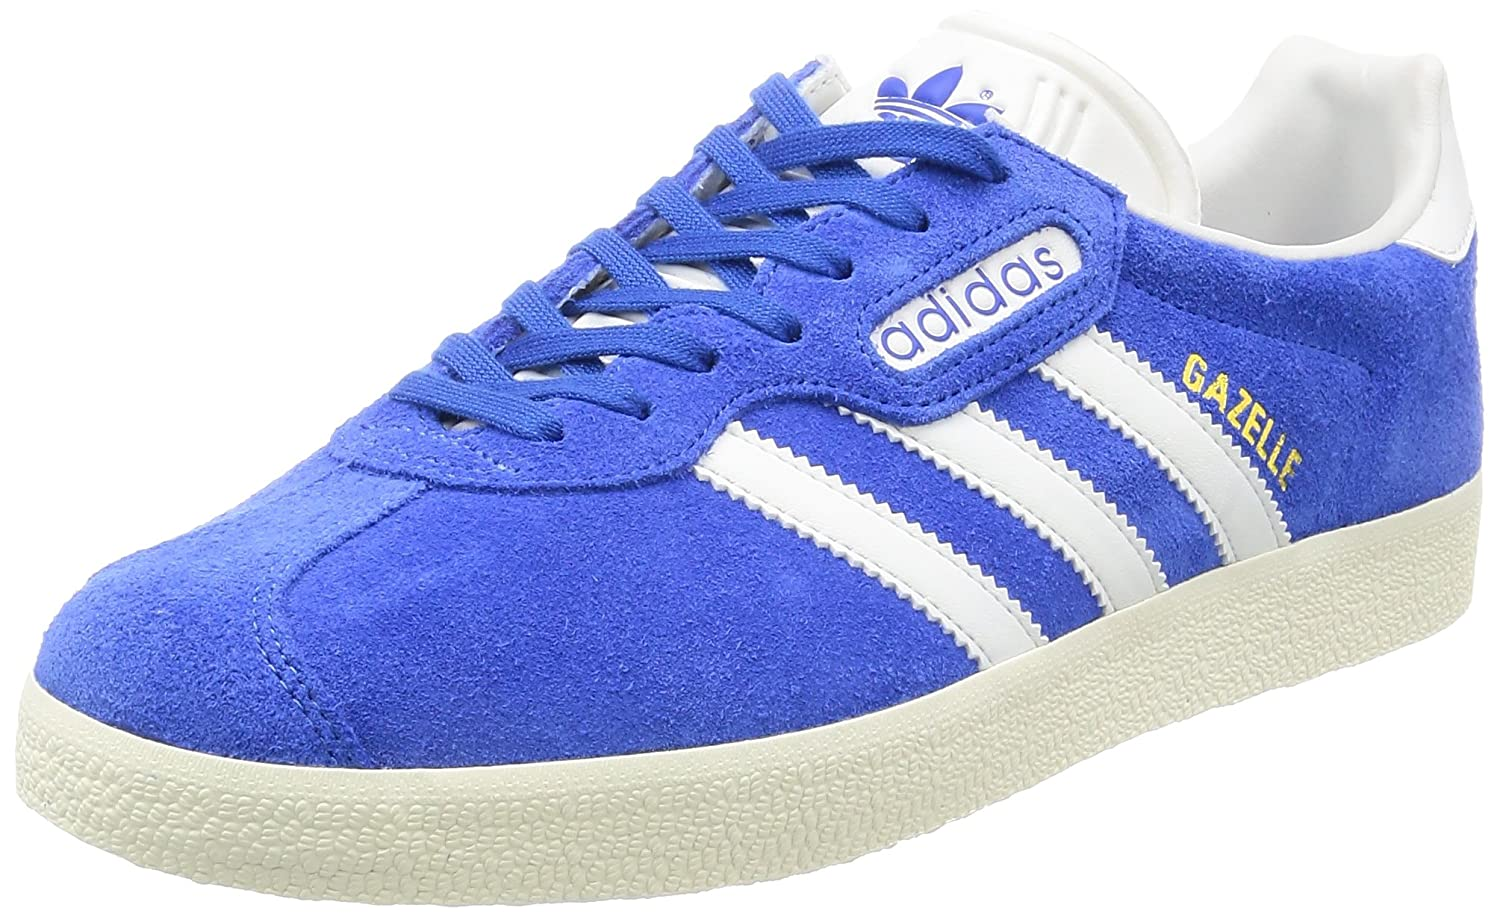 ADIDAS GAZELLE SUPER Blue Vintage White BB5241 Originals